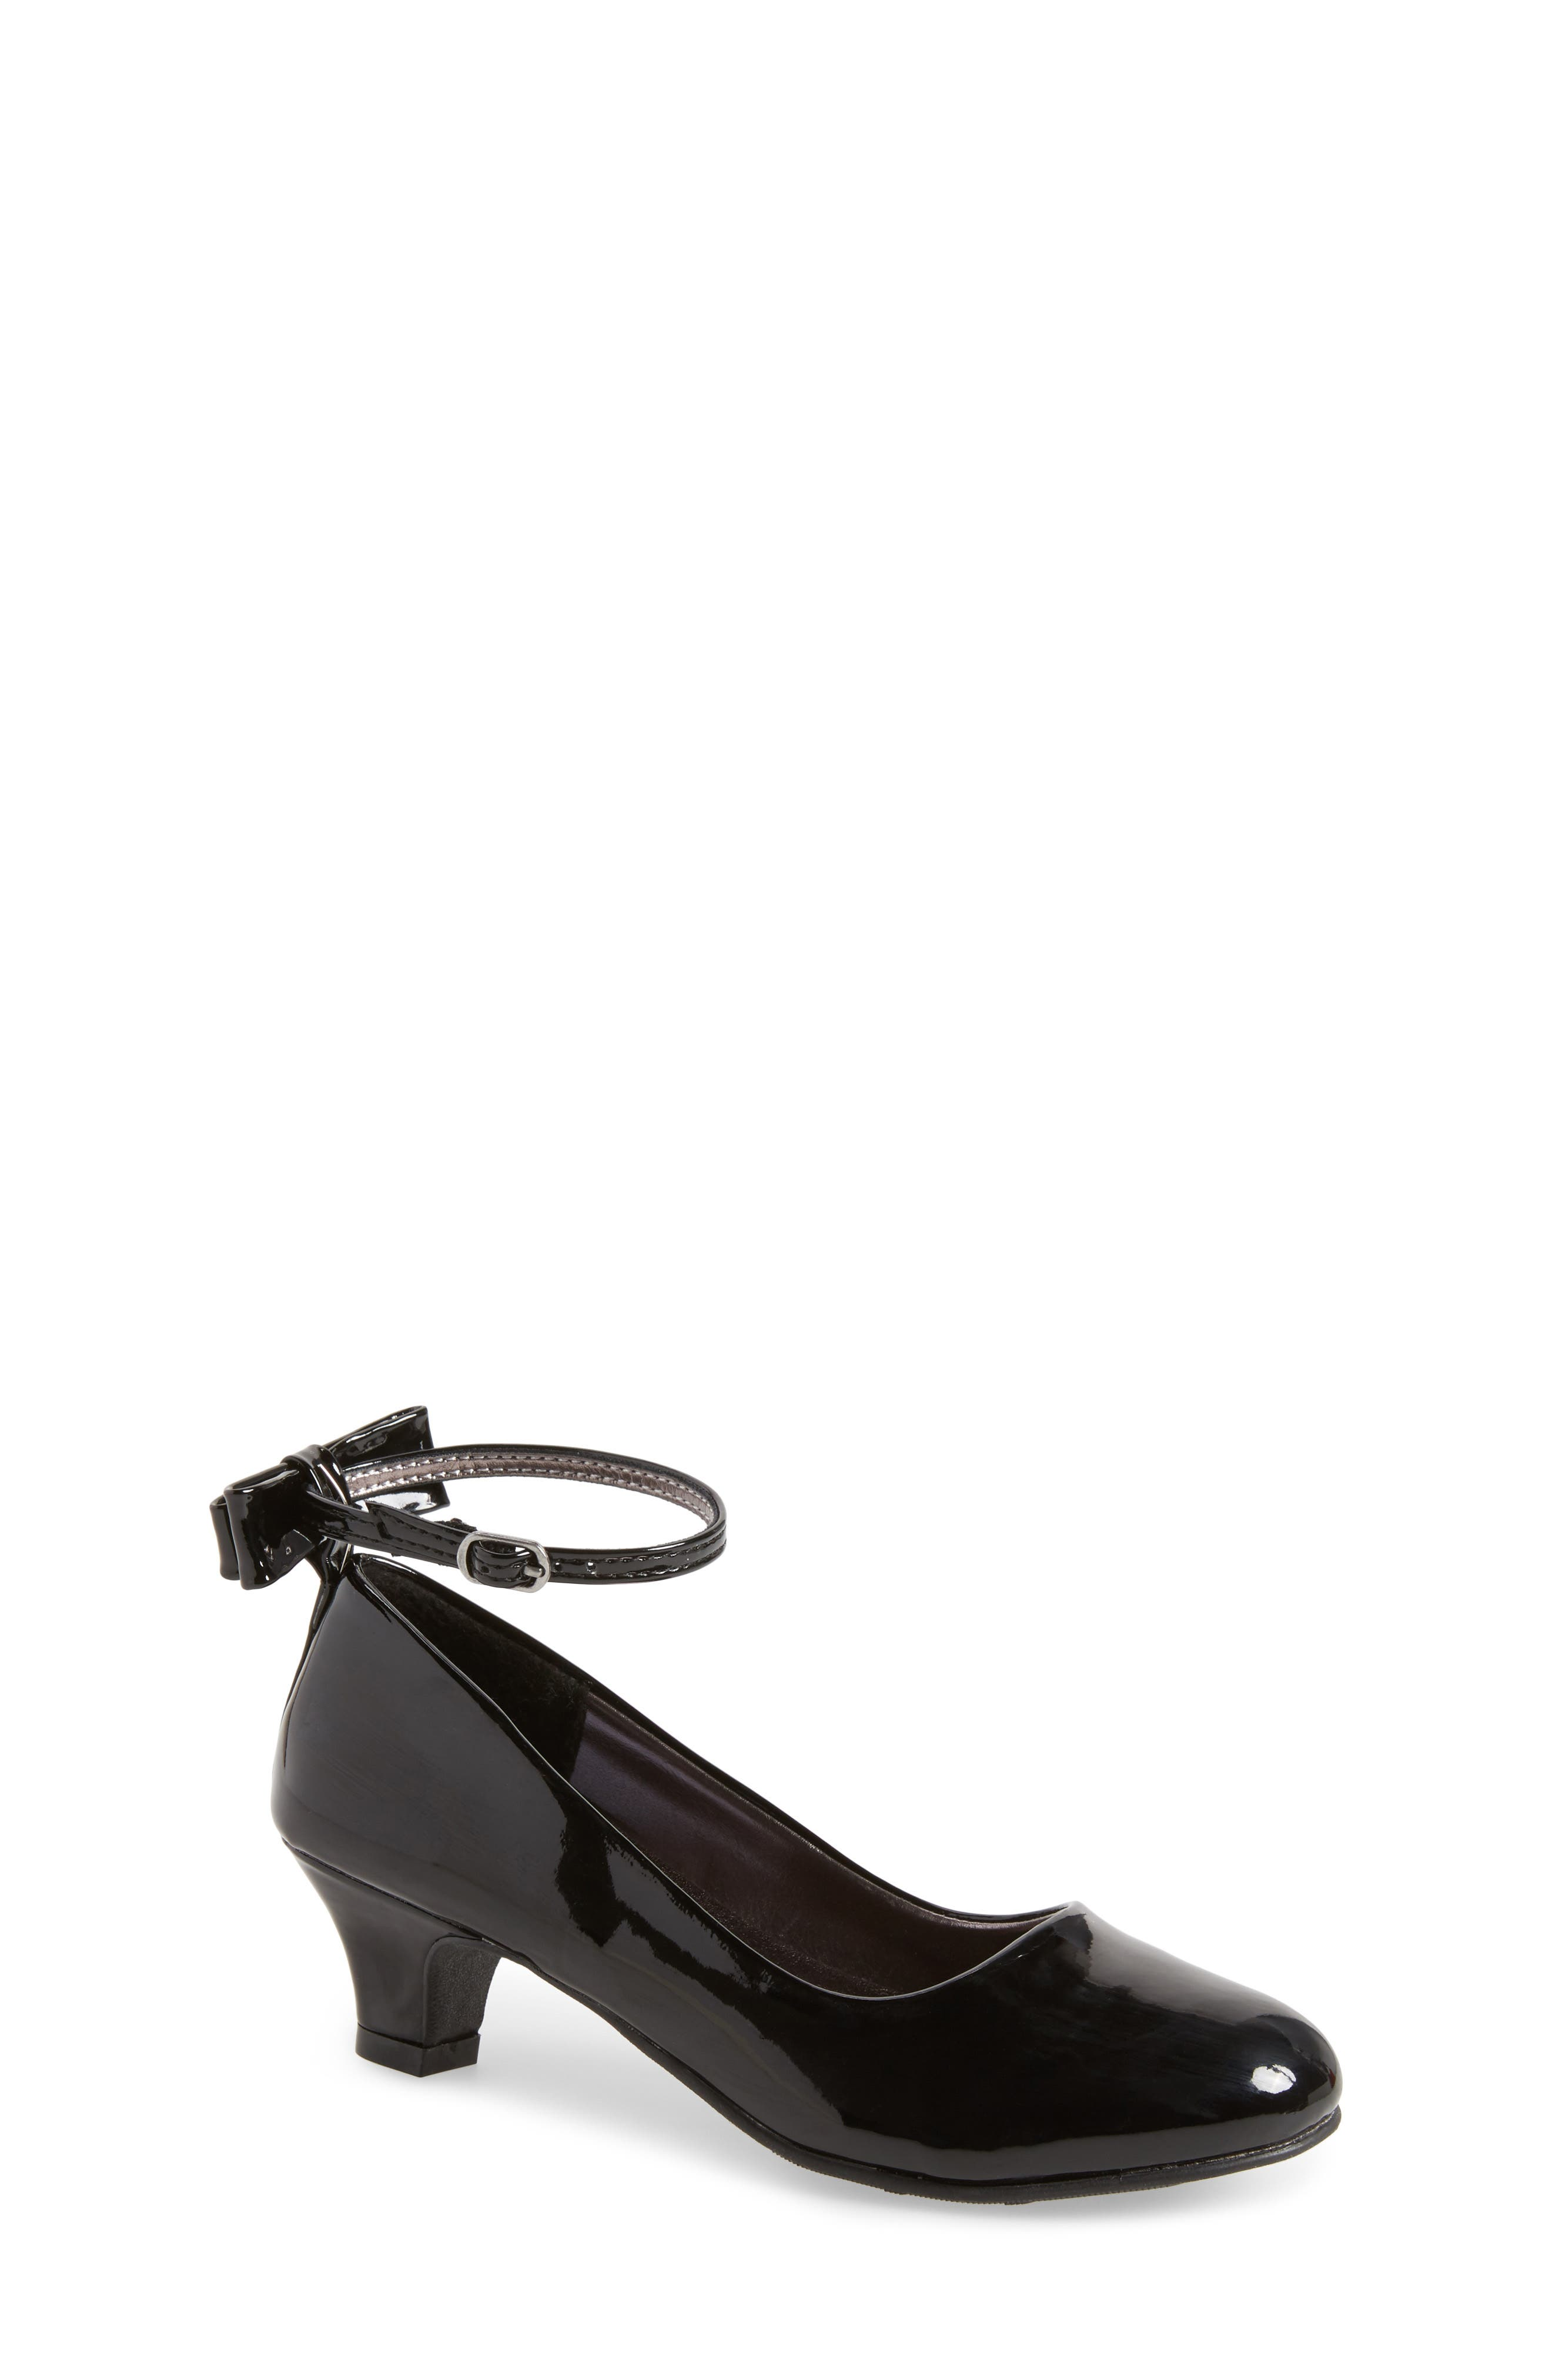 Main Image - Steve Madden Jbeckyy Ankle Strap Bow Pump (Little Kid & Big Kid)